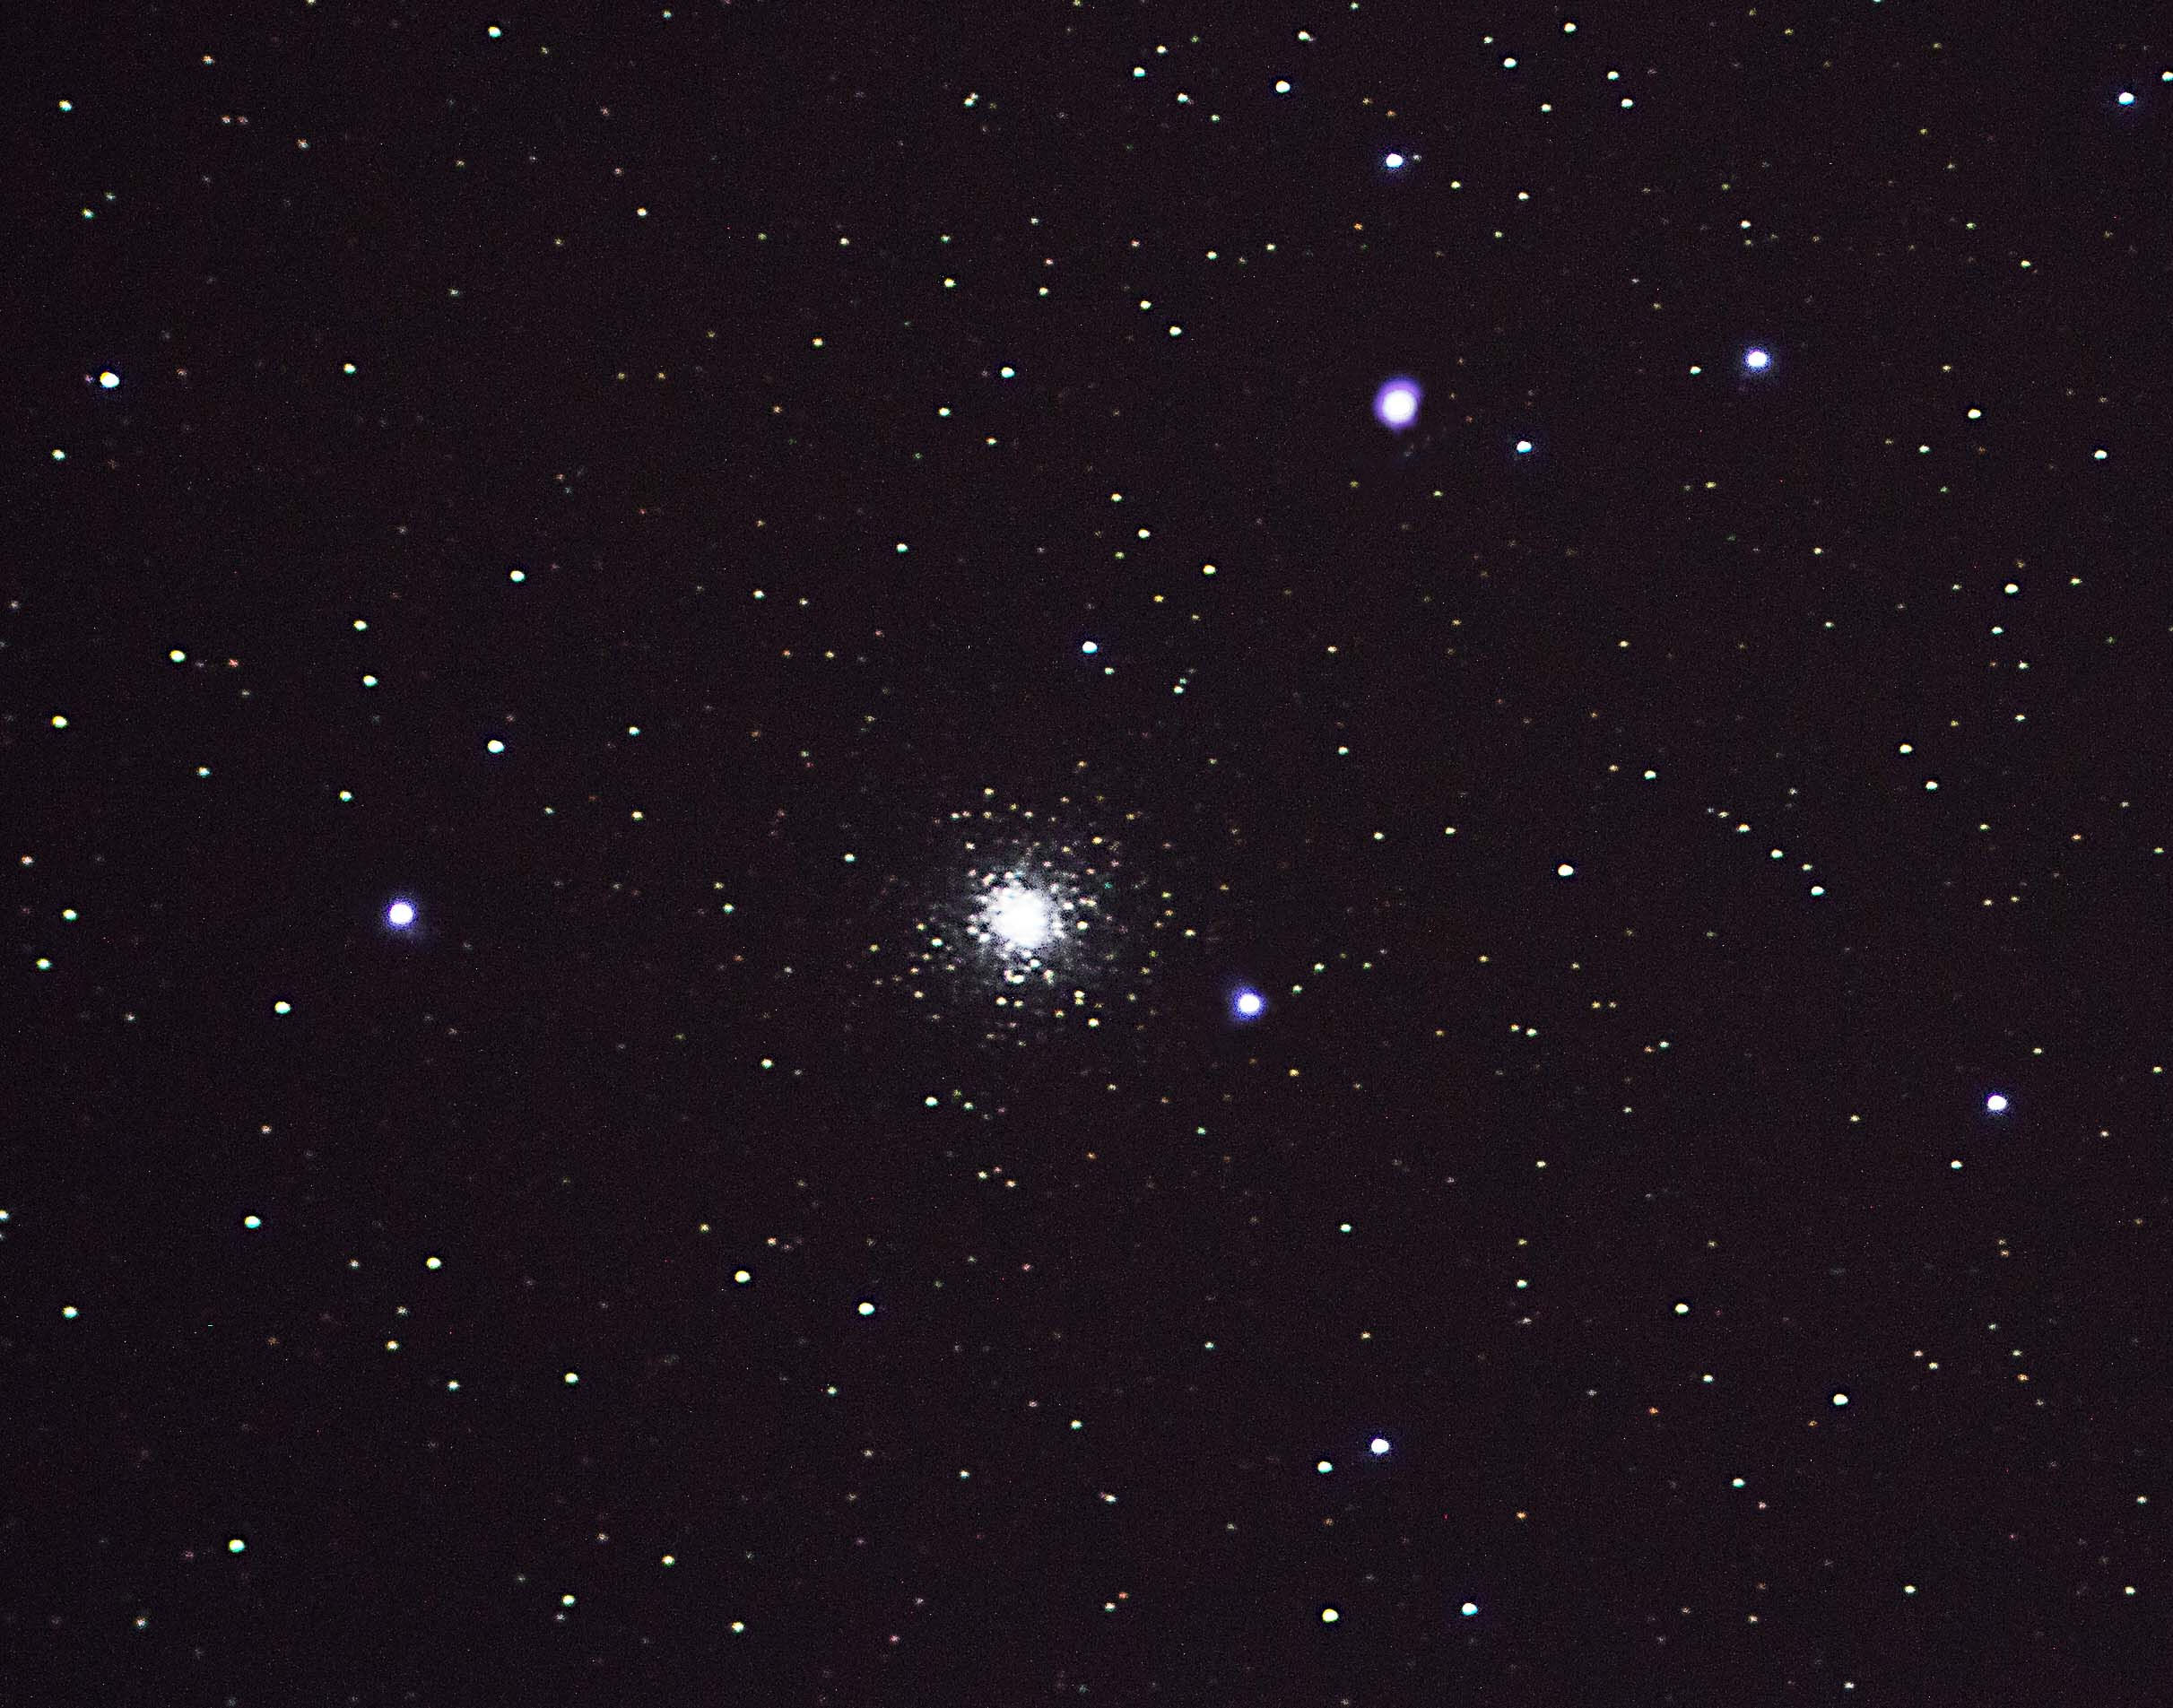 Messier 15 (M15) - The Great Pegasus Cluster By Ken Kennedy. 22.11.16  19:55UT. Canon EOS 100D. 121 seconds  ISO-400